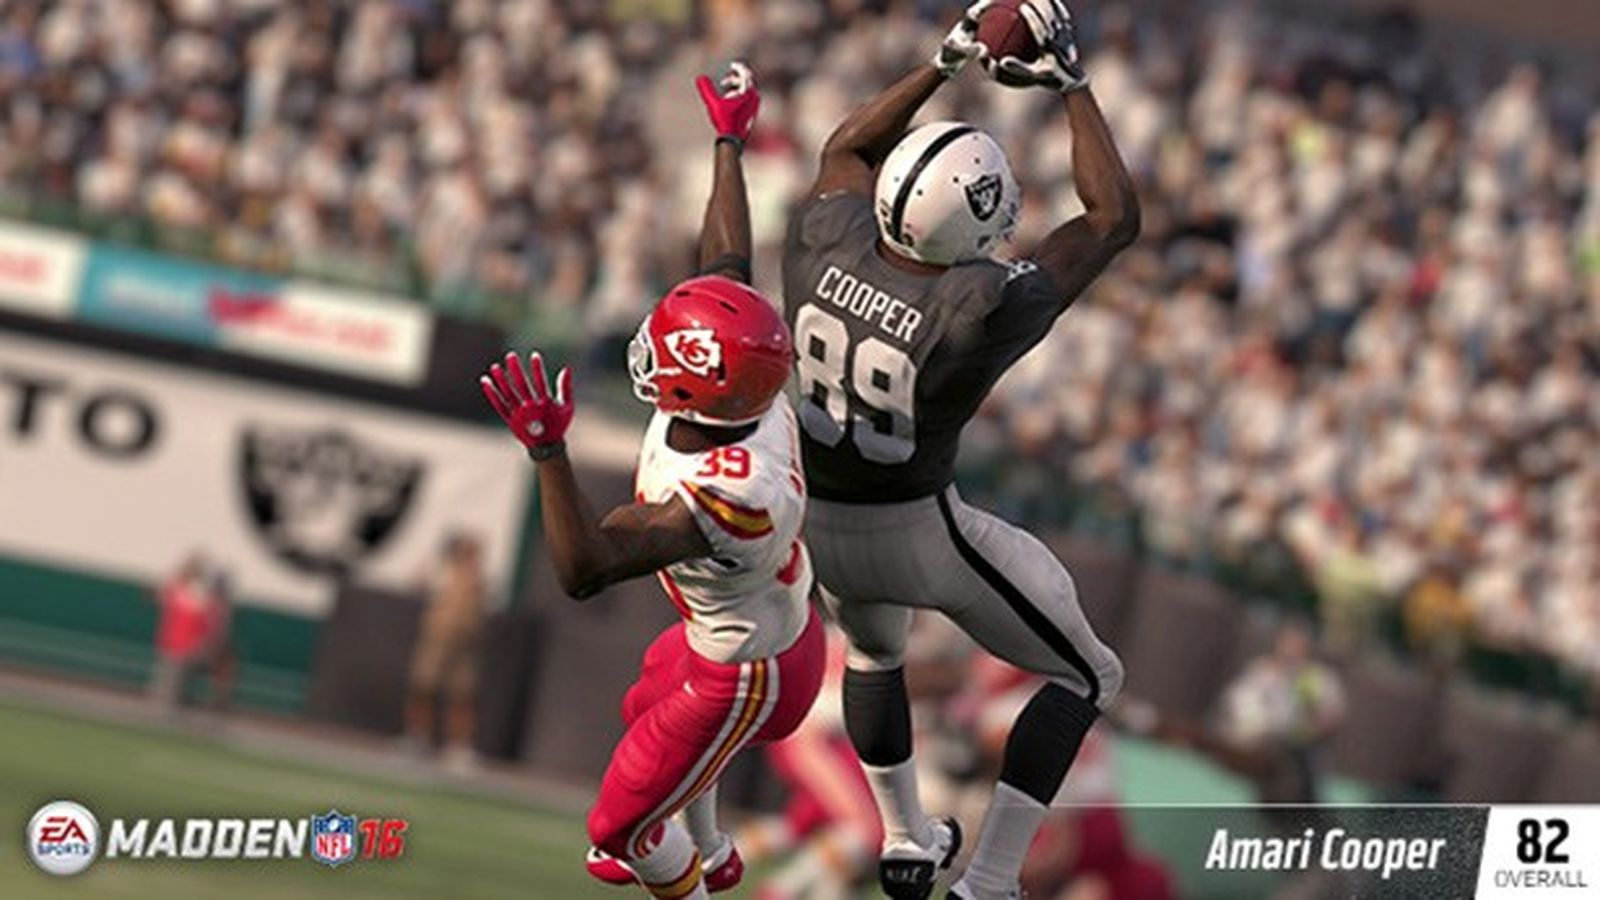 Image courtesy of Madden NFL 16/EA Sports.